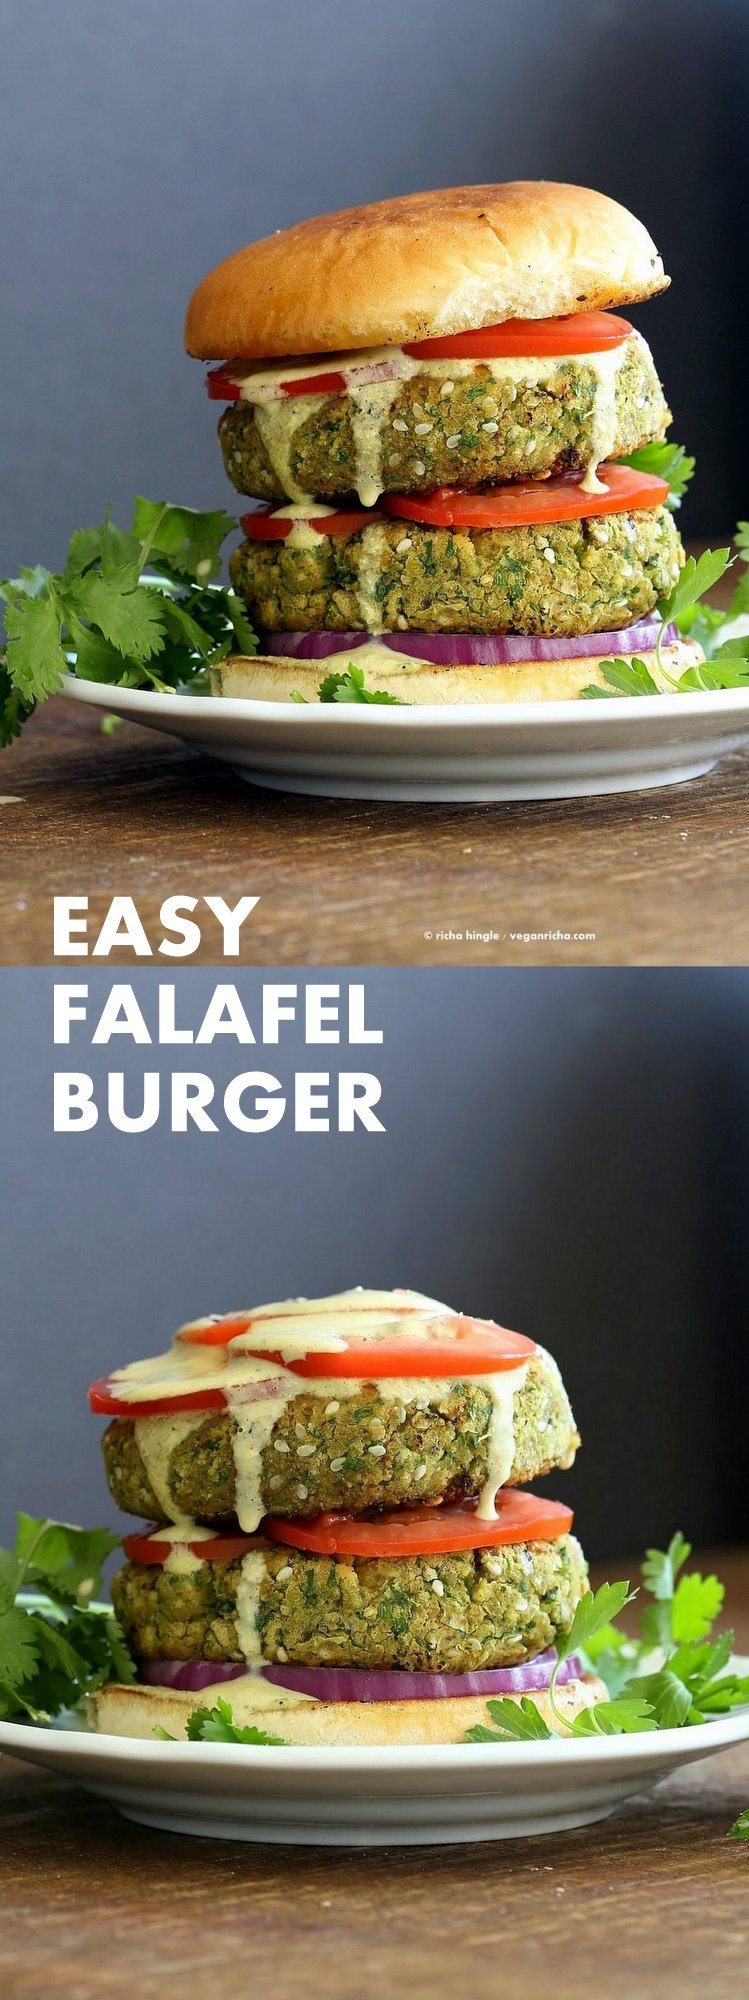 Easy Vegan Falafel Burger. Chickpea patties with 5 minute tahini dressing, tomatoes, onions, pickles make for a filling and flavorful burger. #Vegan #Soyfree #nutfree #Recipe. Can be made #glutenfree | VeganRicha.com